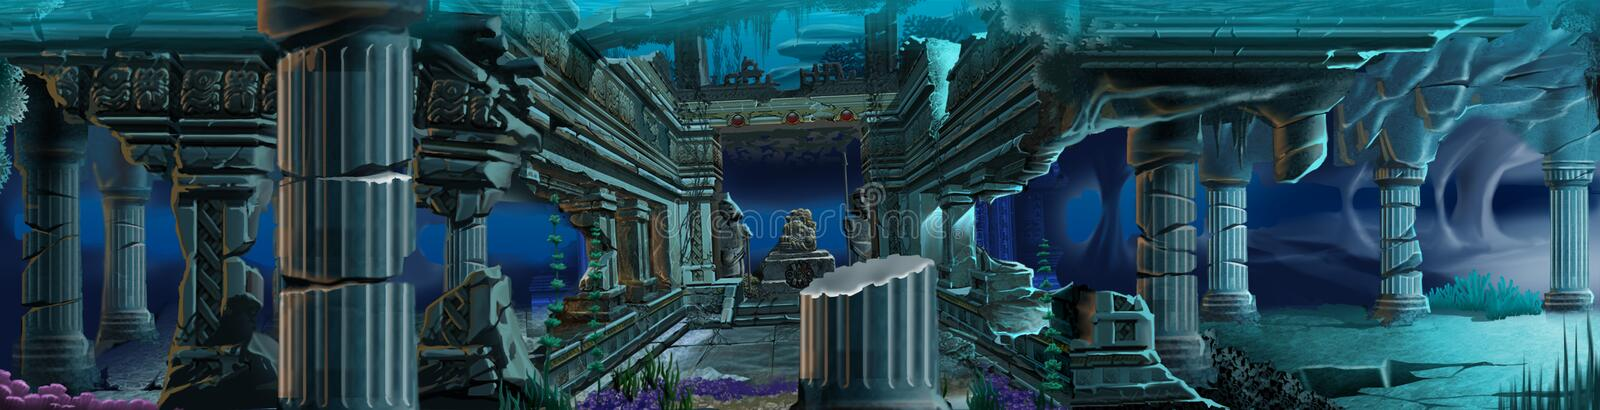 Atlantis ruins. Underwater background. stock illustration